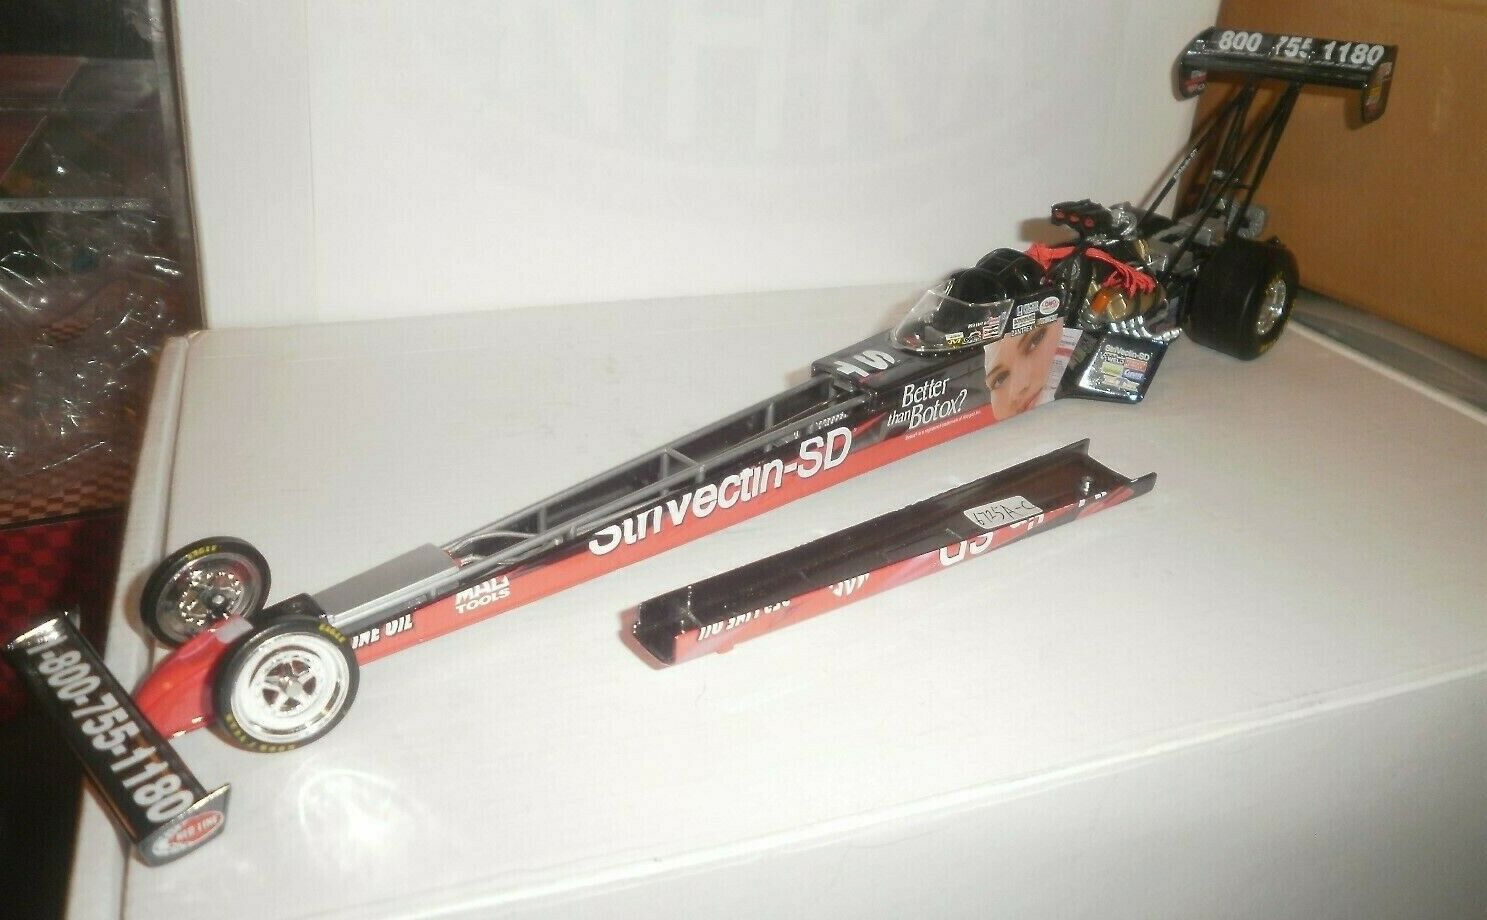 grandi offerte NHRA 1 24 DAVID GRUBNIC 06 STRIVECTIN Coloreeeee Coloreeeee Coloreeeee CHROME PRE PRODUCTION ProssoOTYPE  Felice shopping